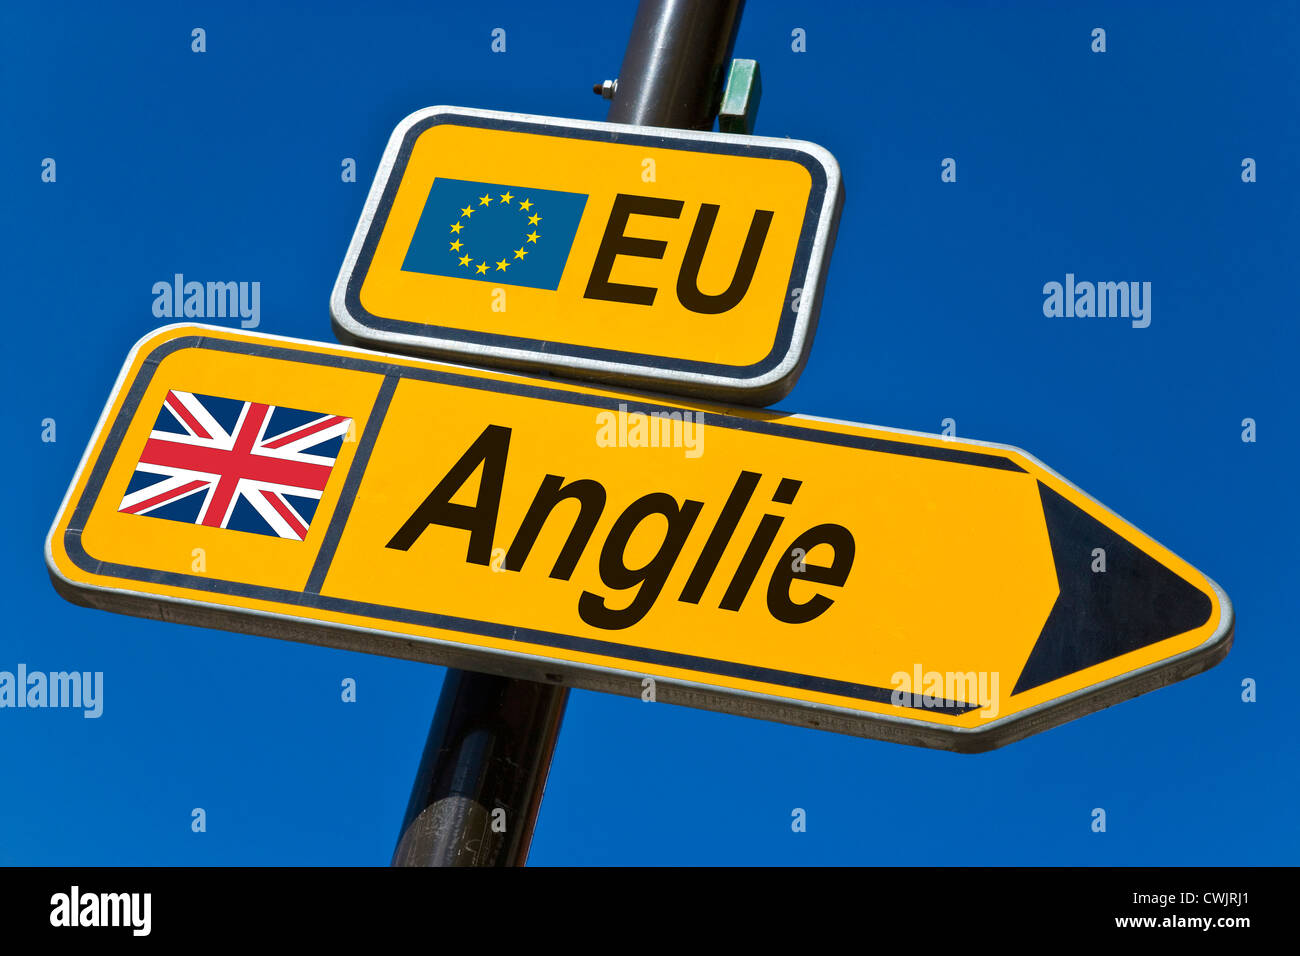 European Union and flag of England - Stock Image